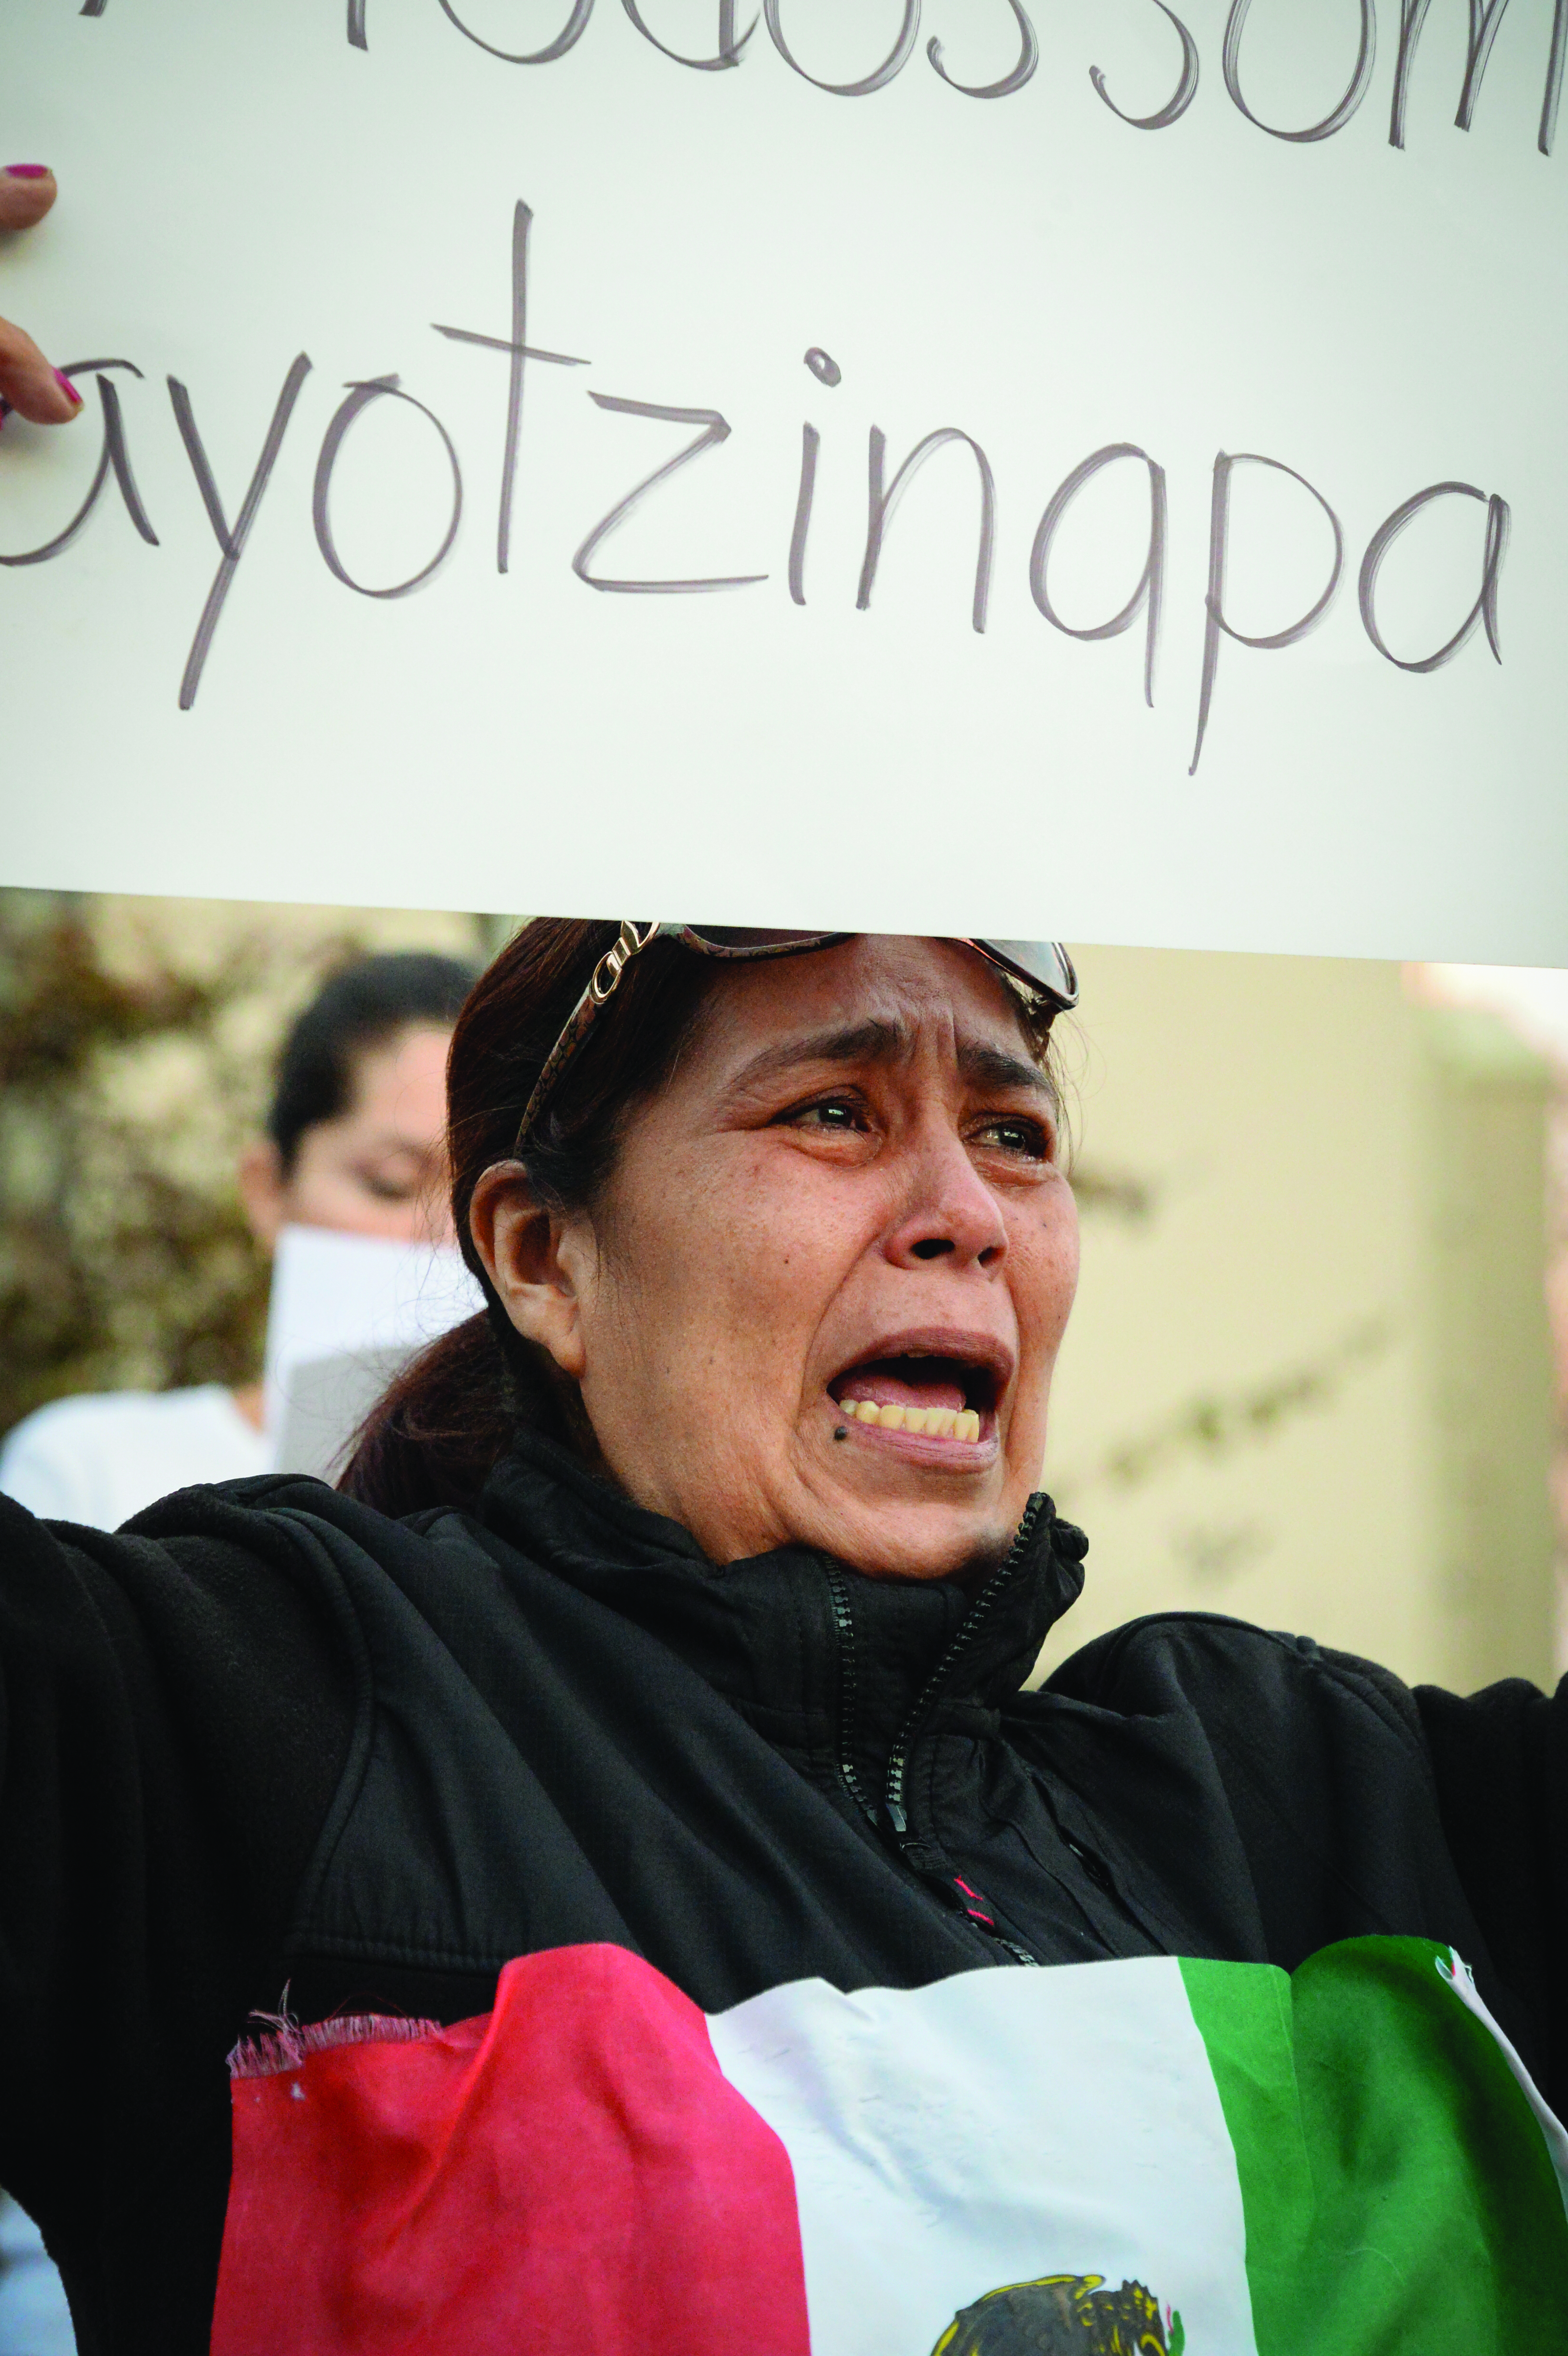 Rally in support of missing Ayotzinapa students, Mount Pleasant, December 2014